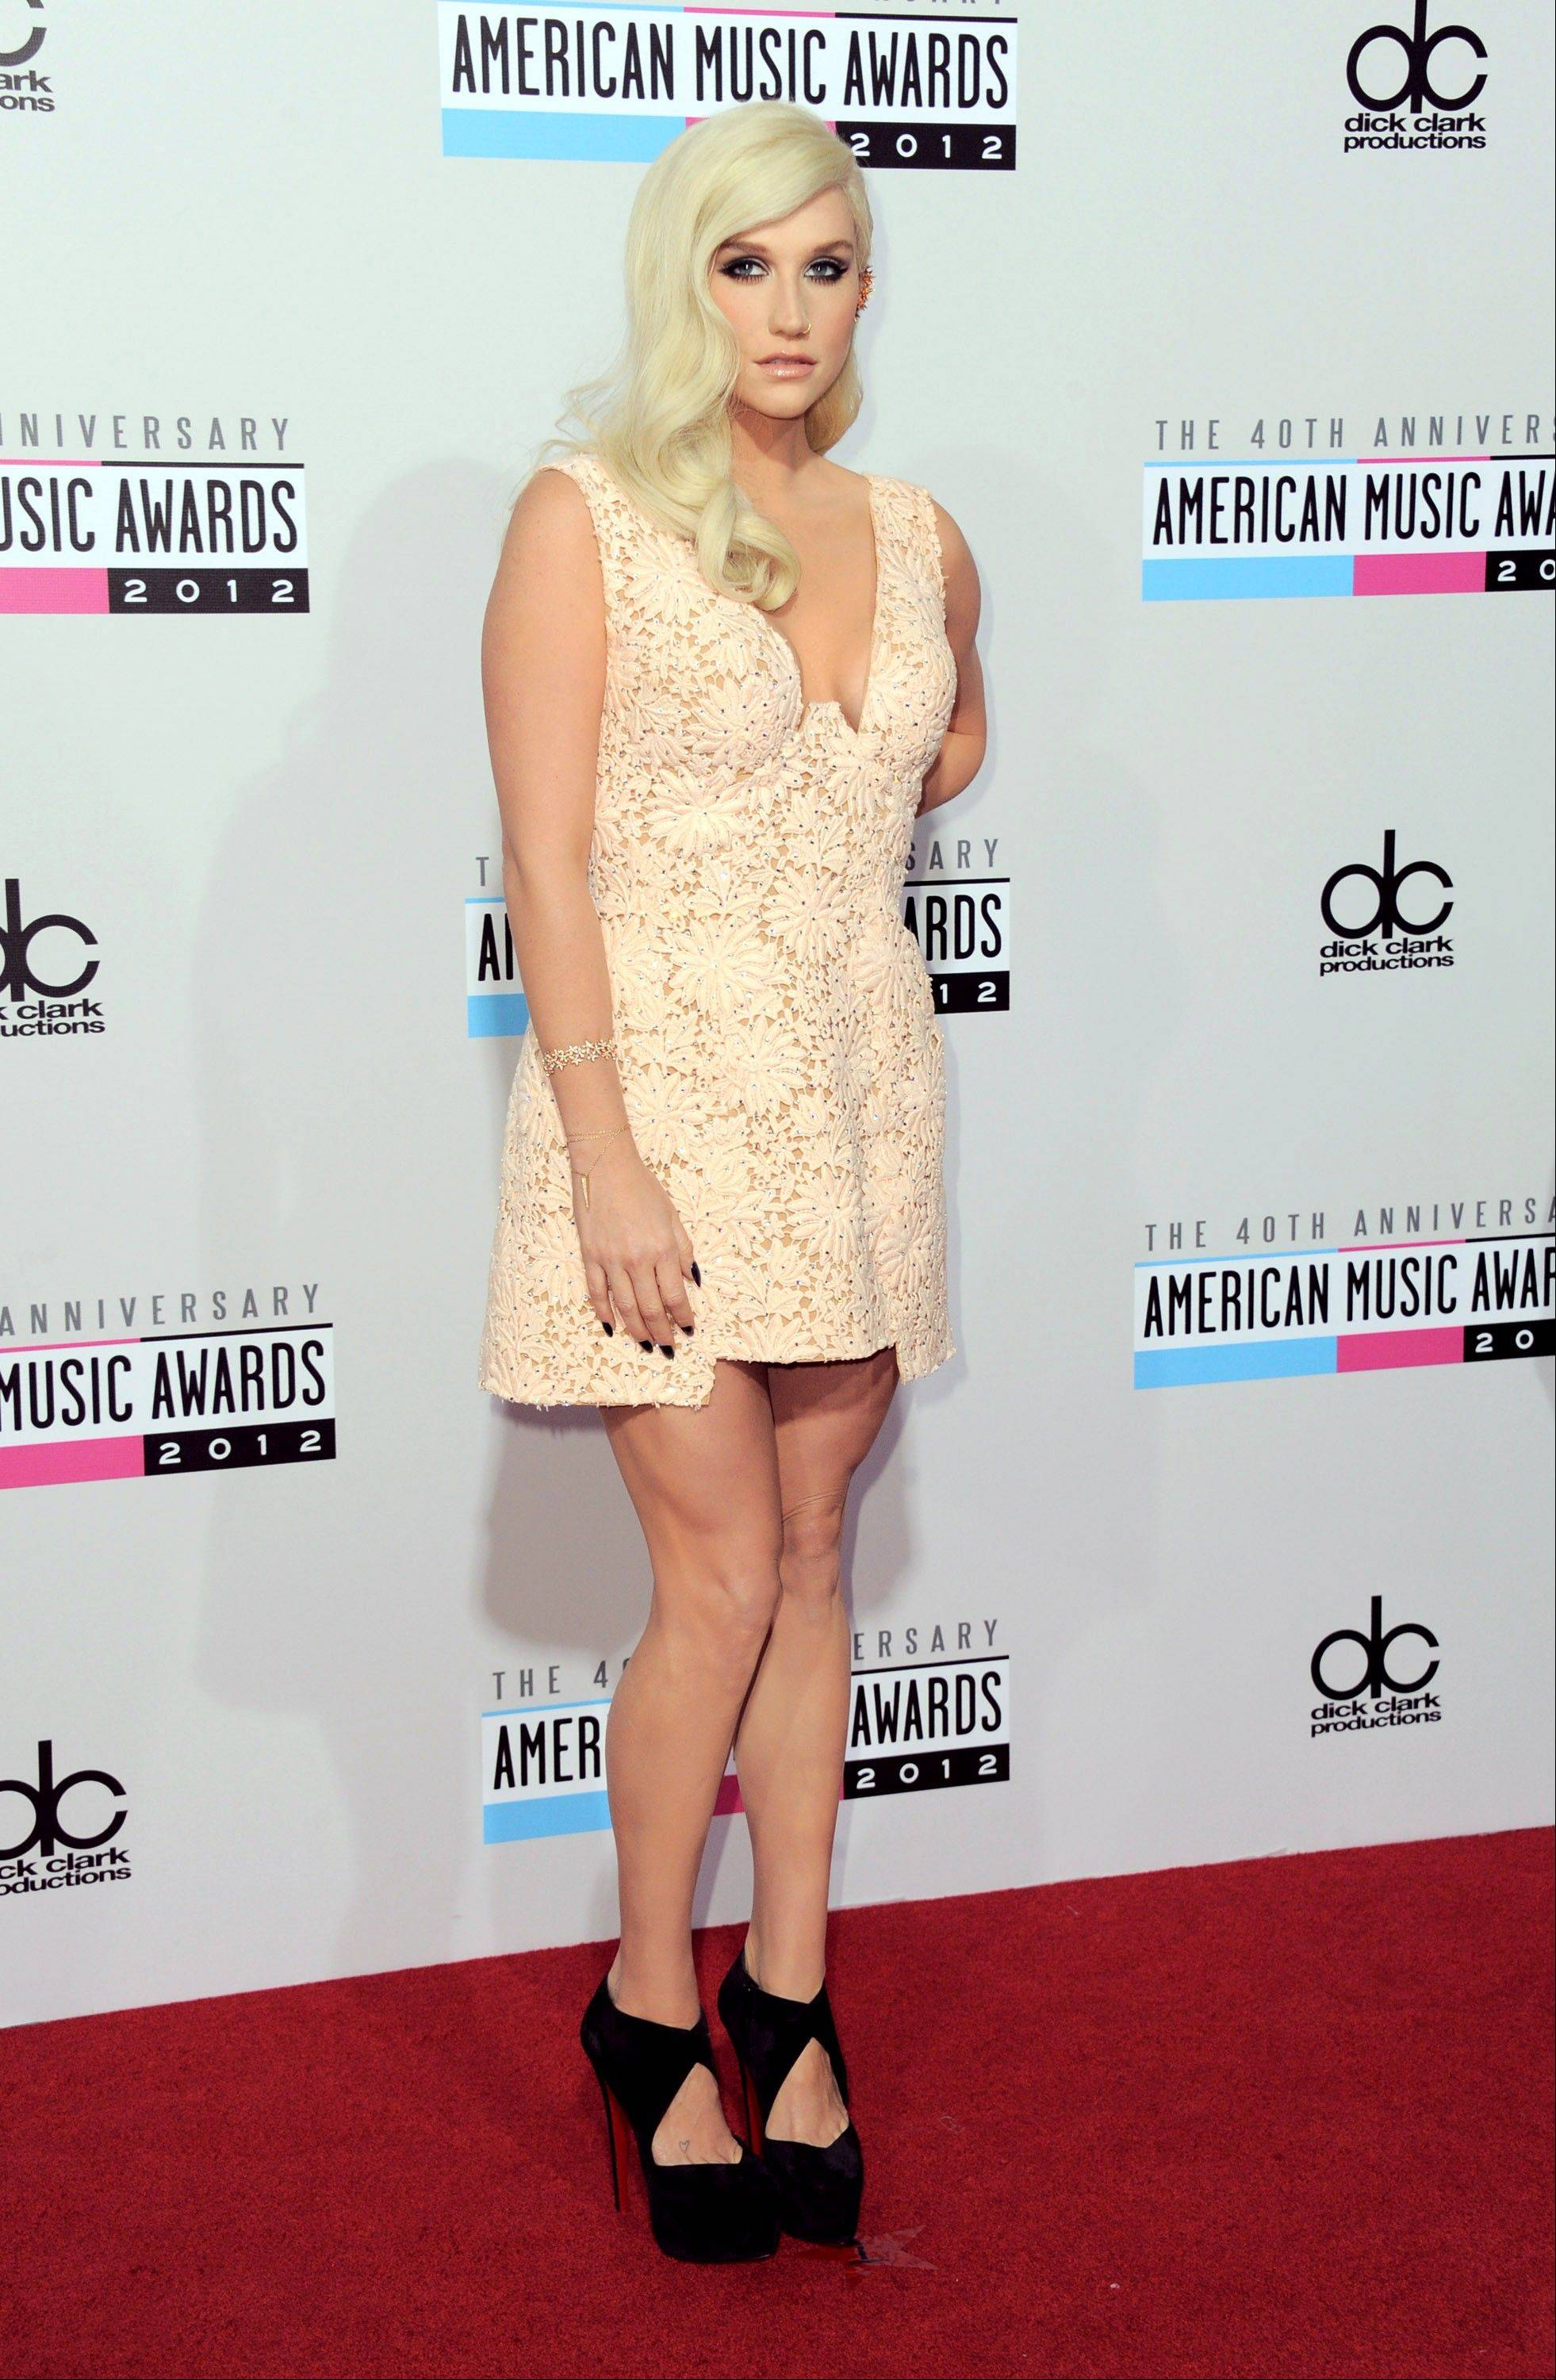 Ke$ha arrives at the 40th Anniversary American Music Awards on Sunday, Nov. 18, 2012, in Los Angeles.